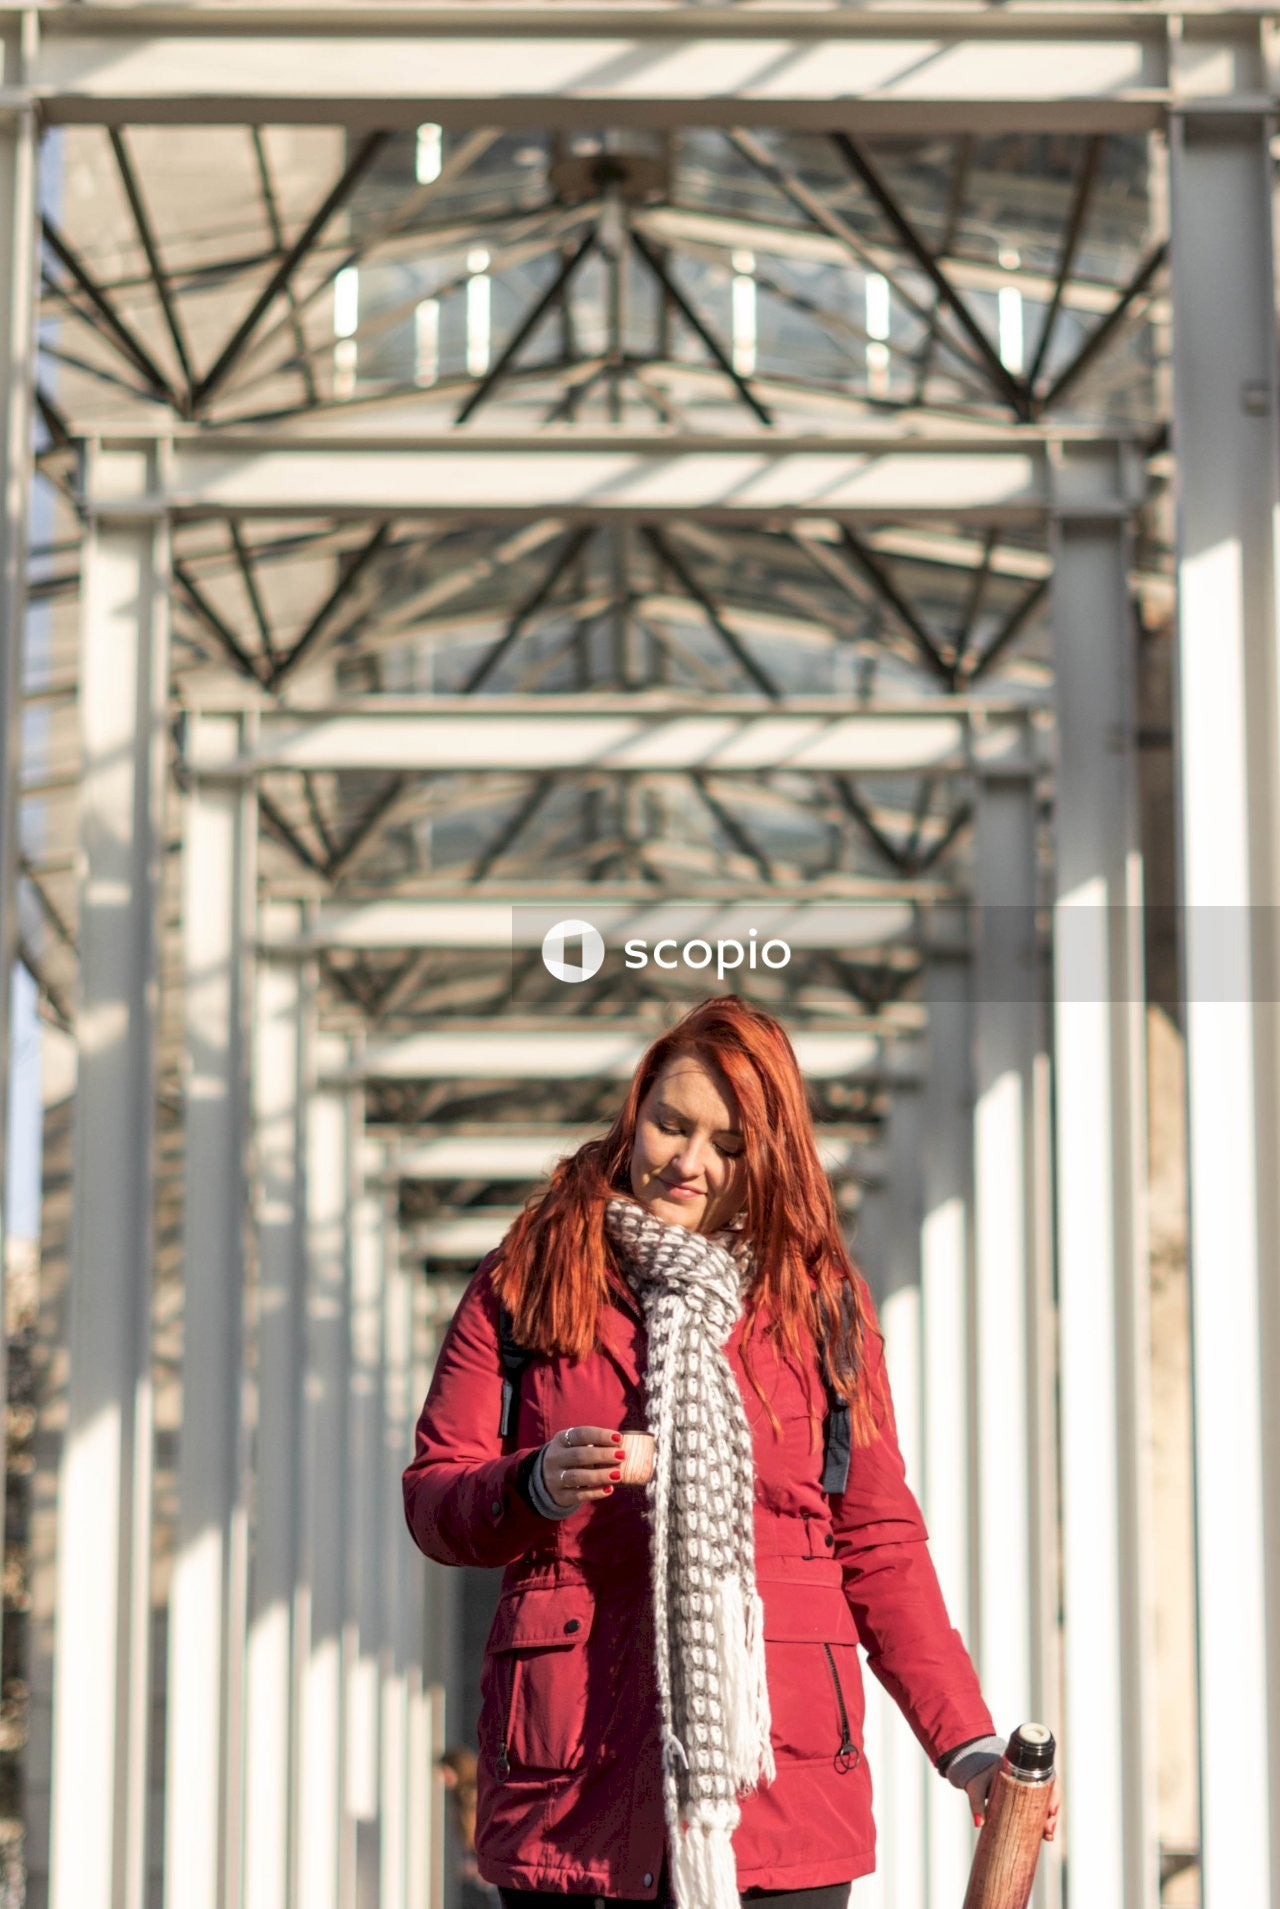 Woman in red jacket standing near white metal bridge